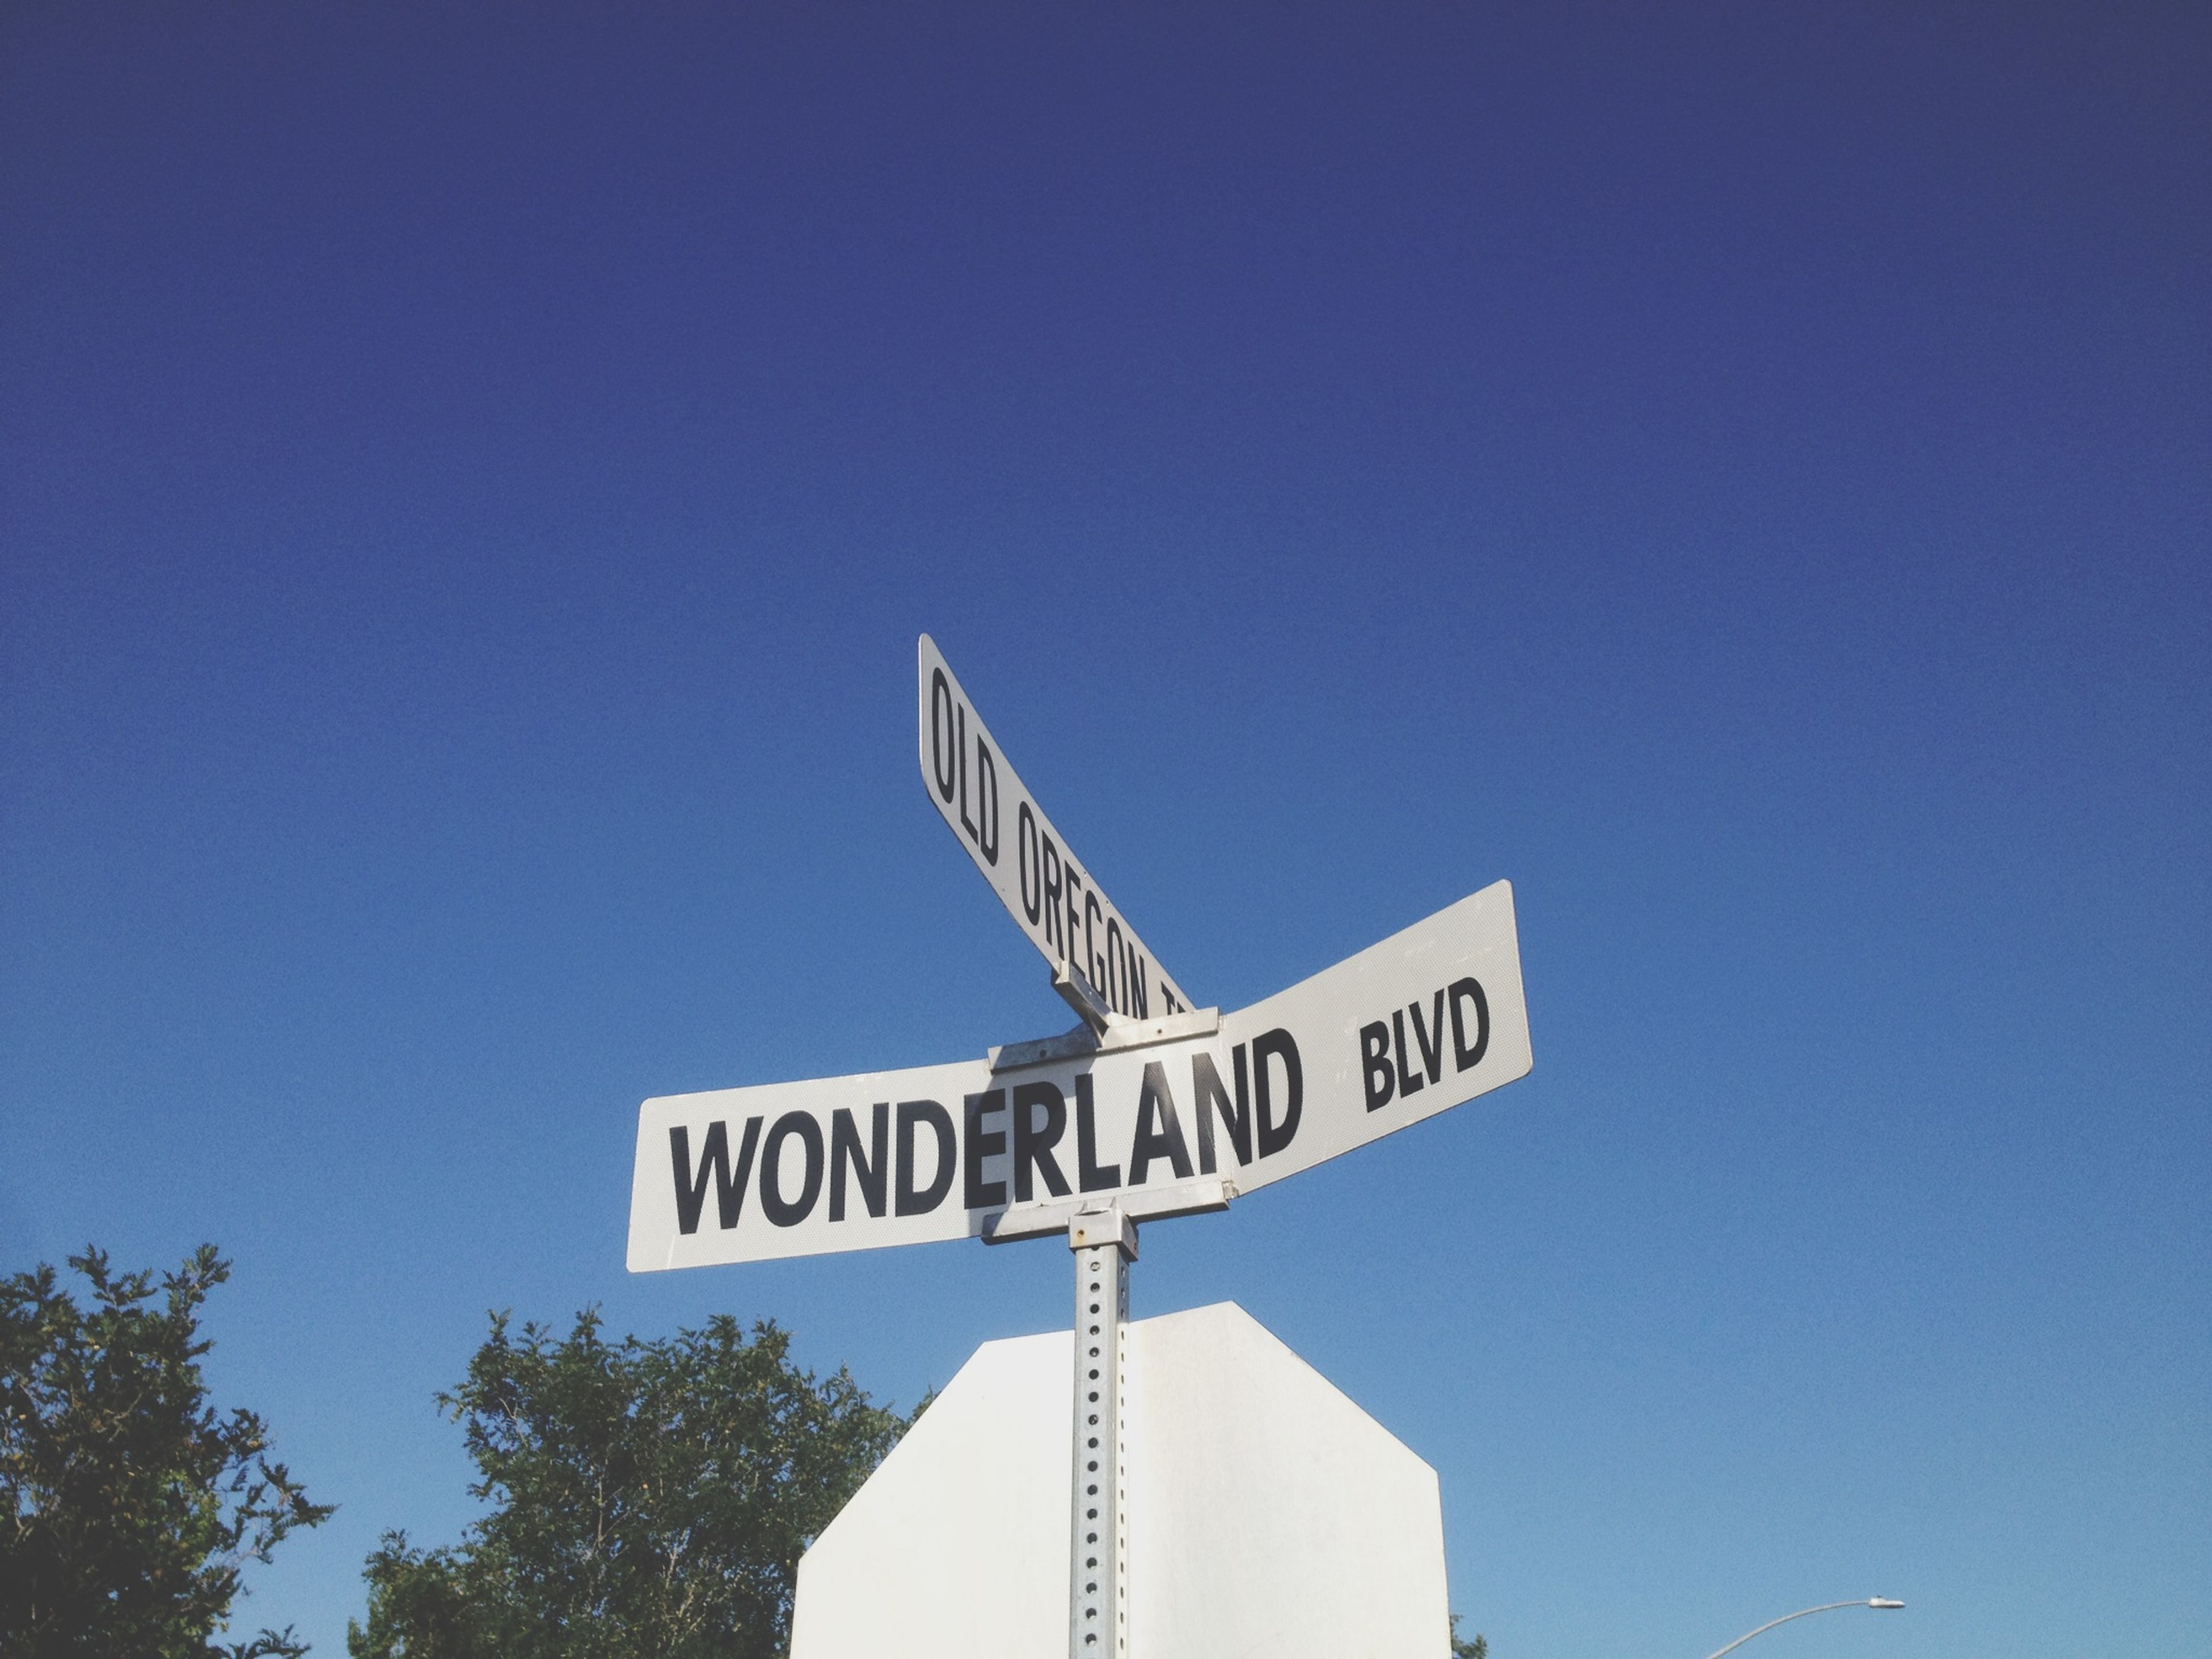 low angle view, clear sky, blue, communication, text, western script, copy space, guidance, sign, information, directional sign, arrow symbol, information sign, road sign, high section, day, direction, no people, outdoors, built structure